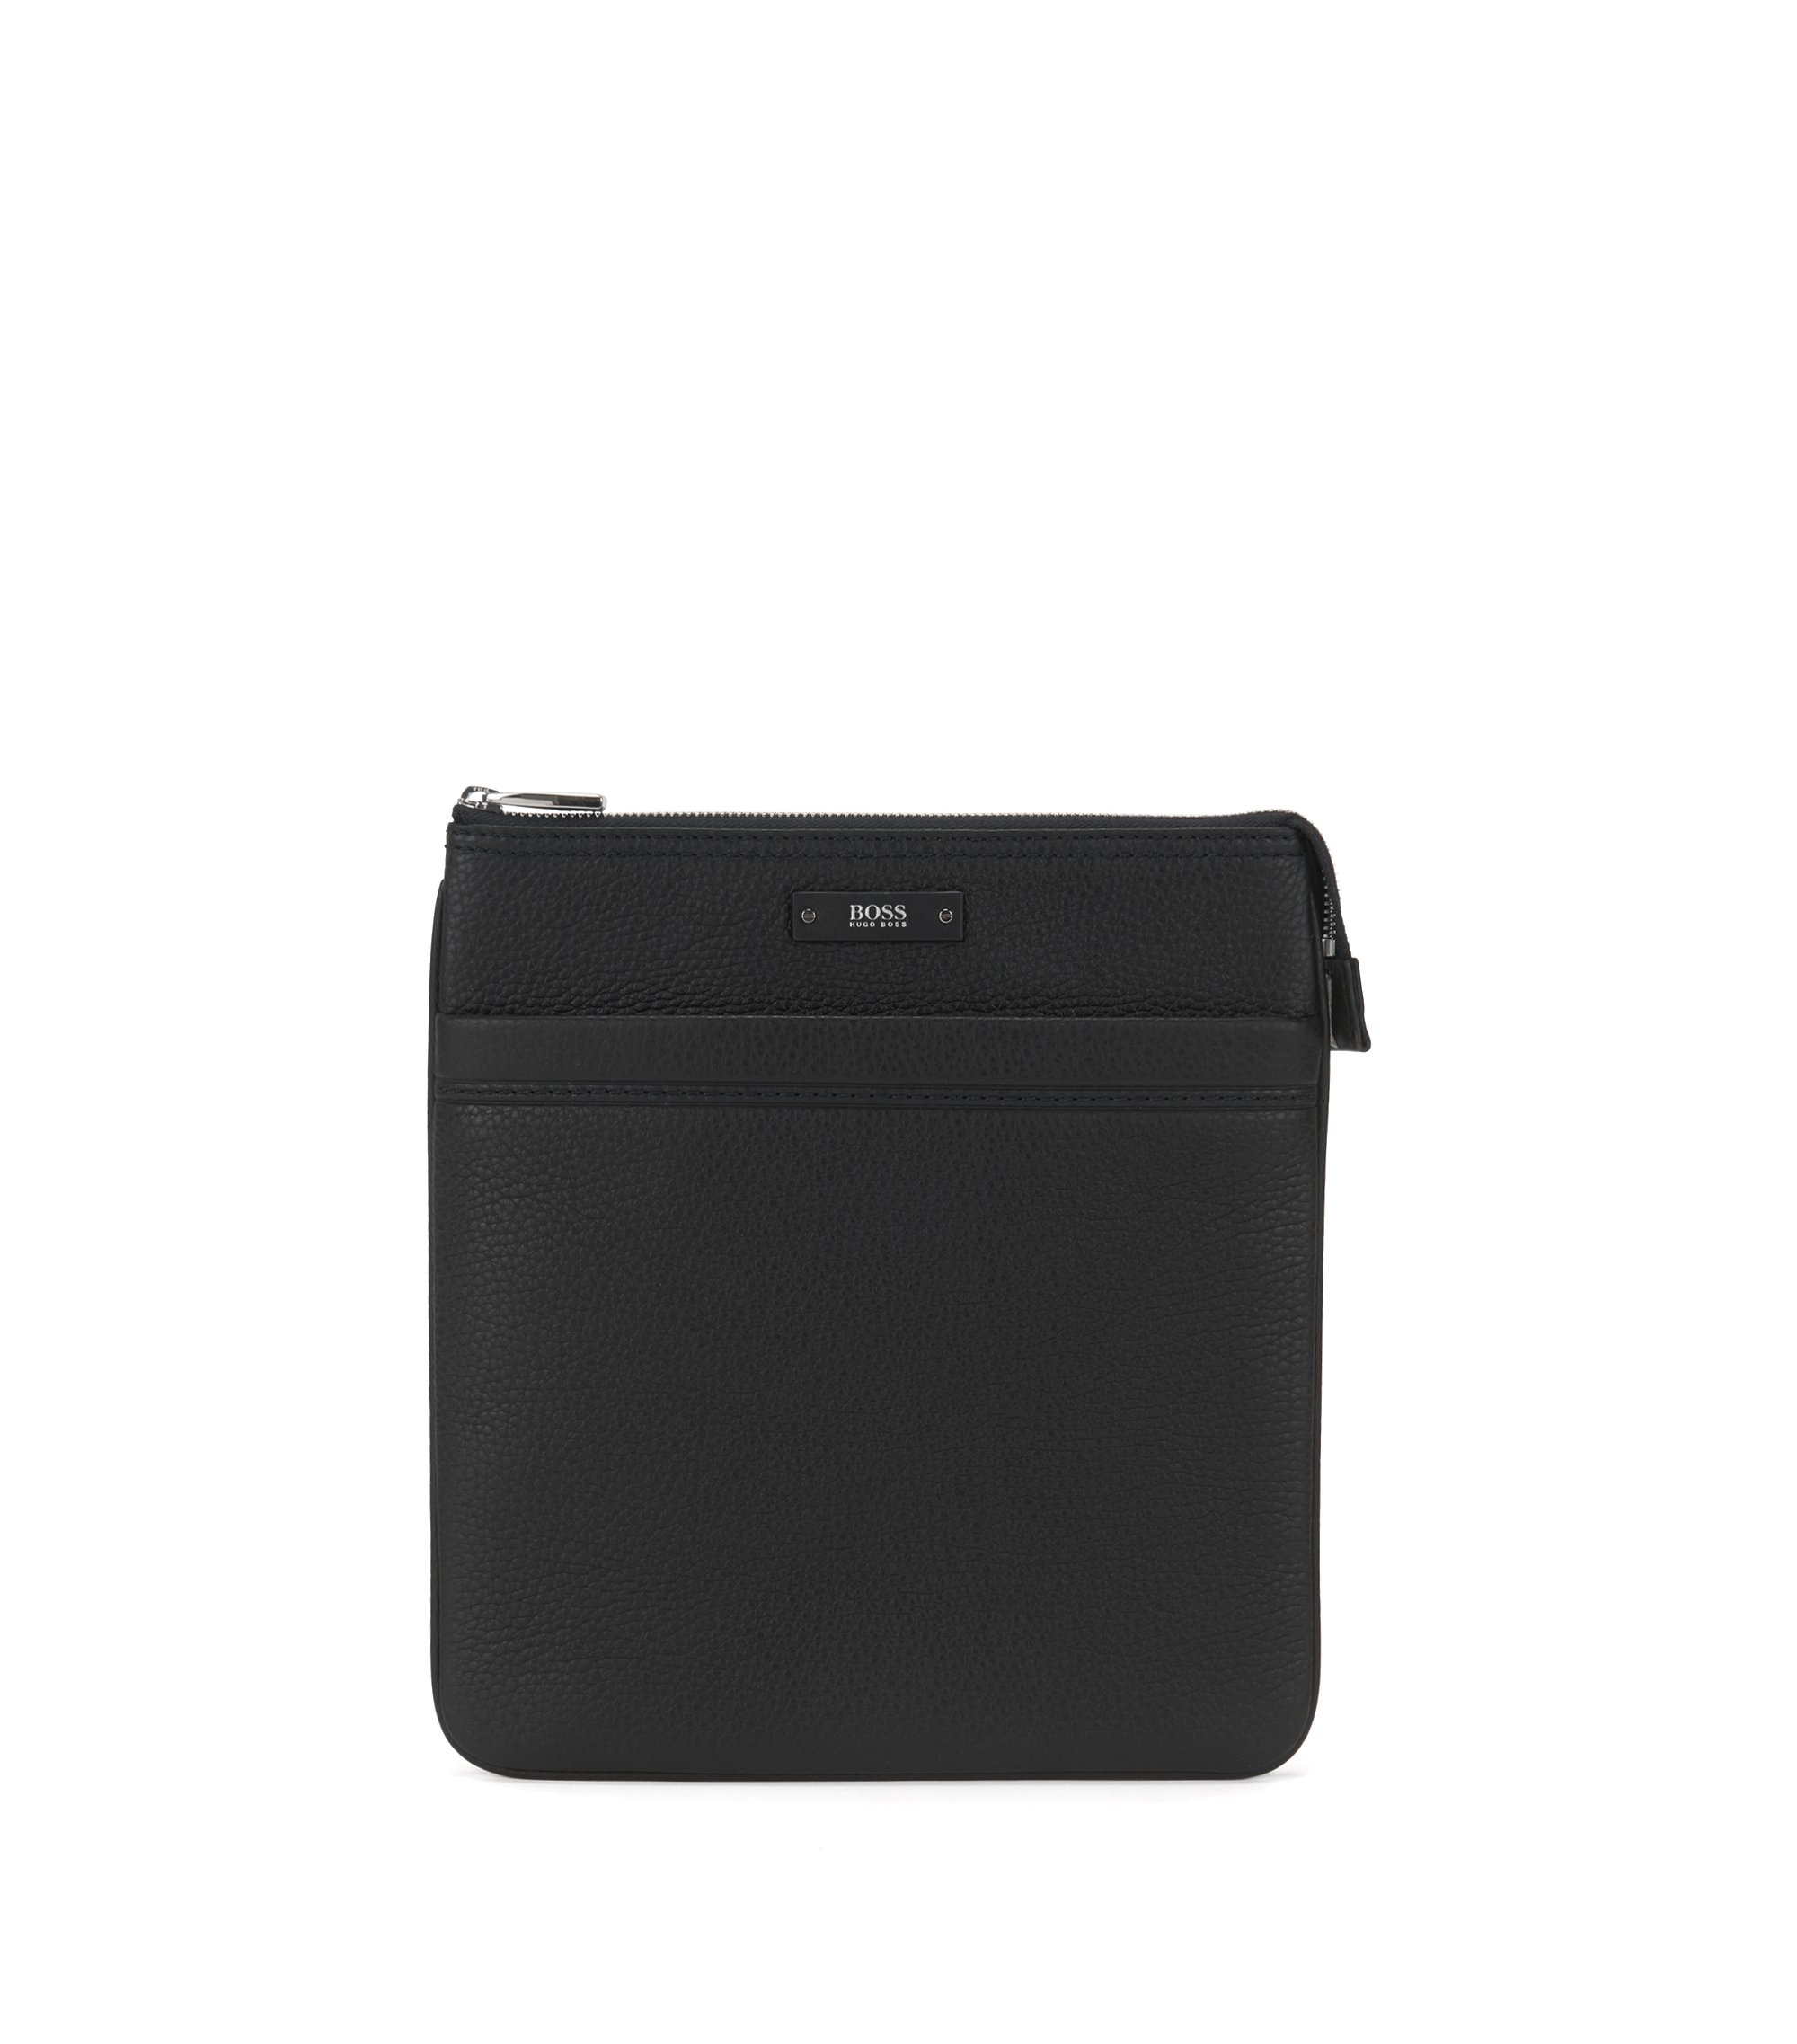 Borsa envelope a tracolla in pelle martellata naturale by BOSS, Nero